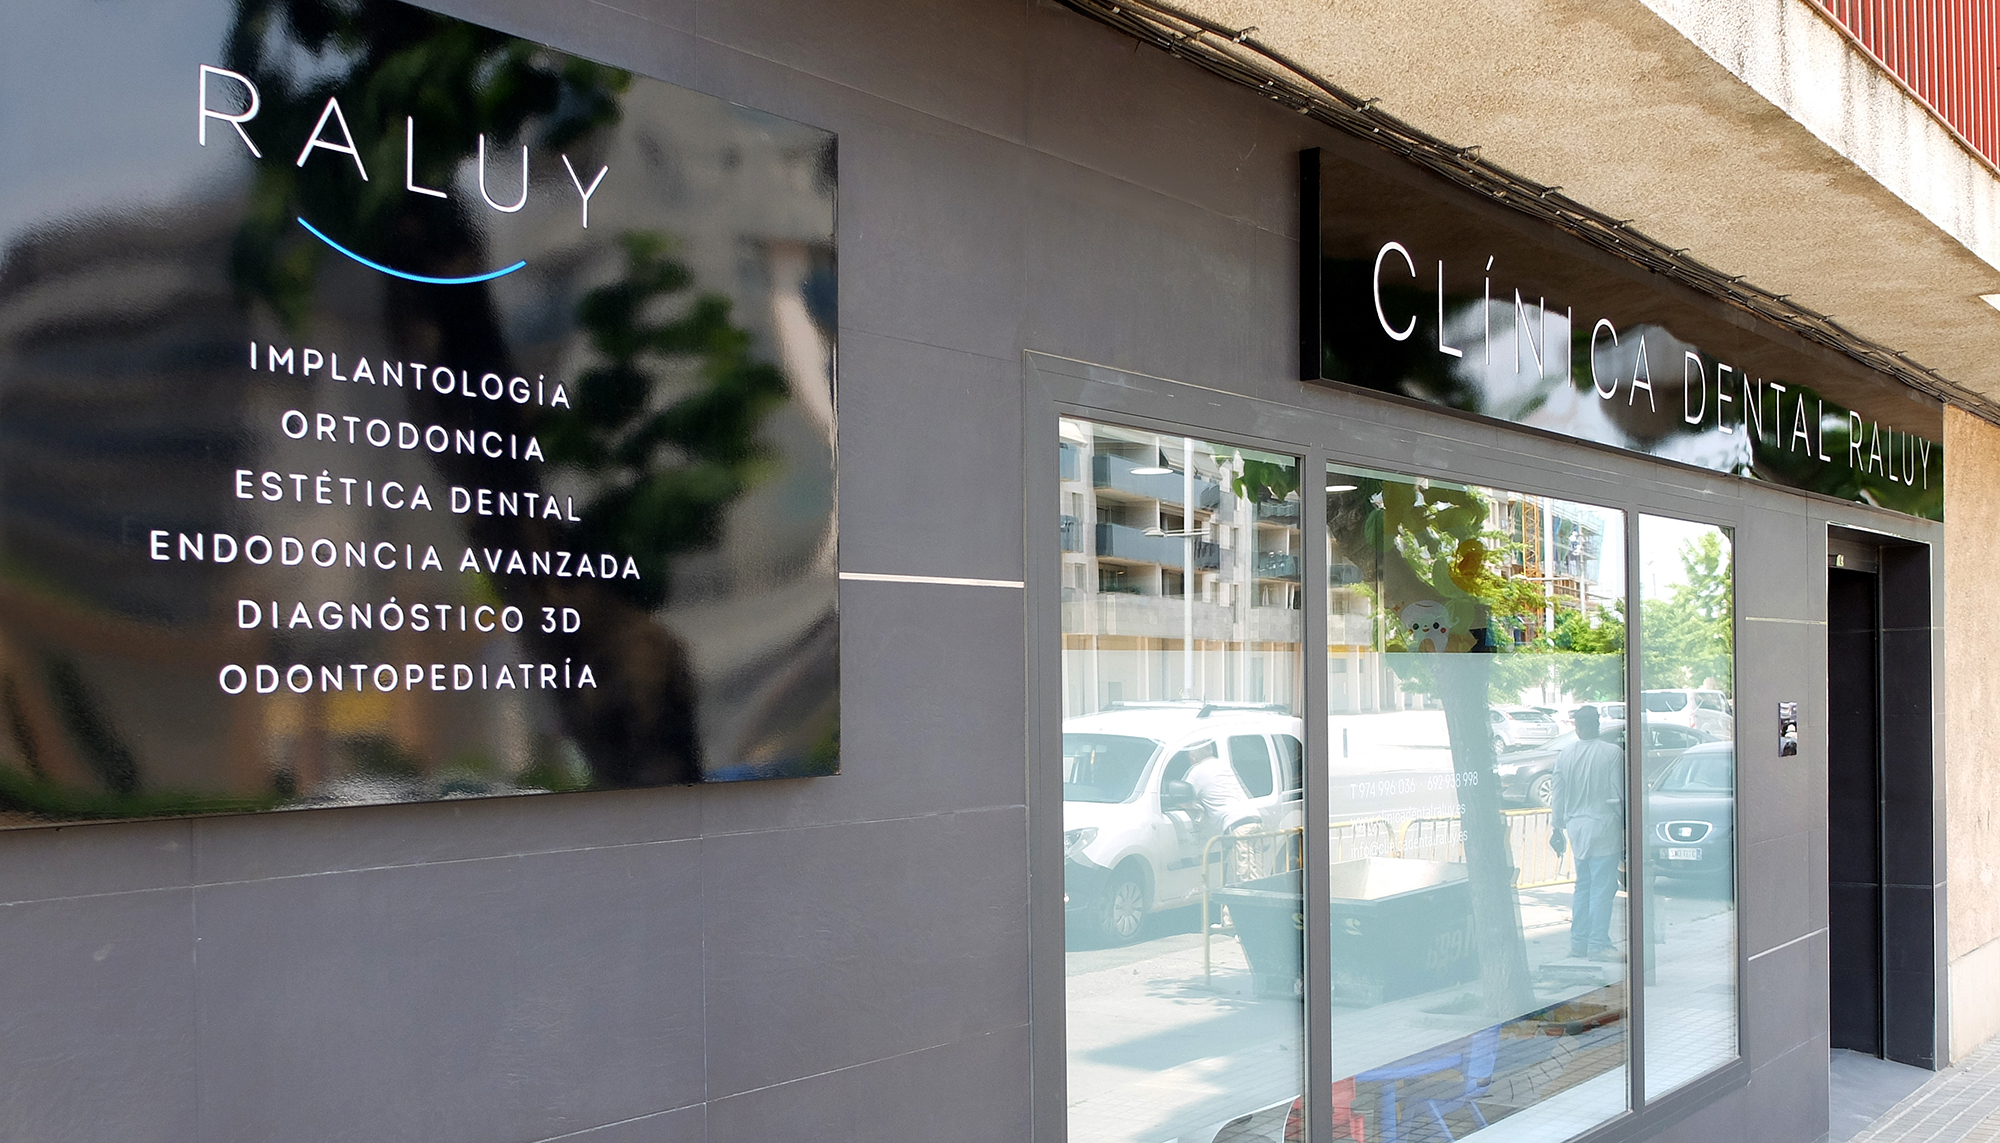 clinica-dental-raluy-11